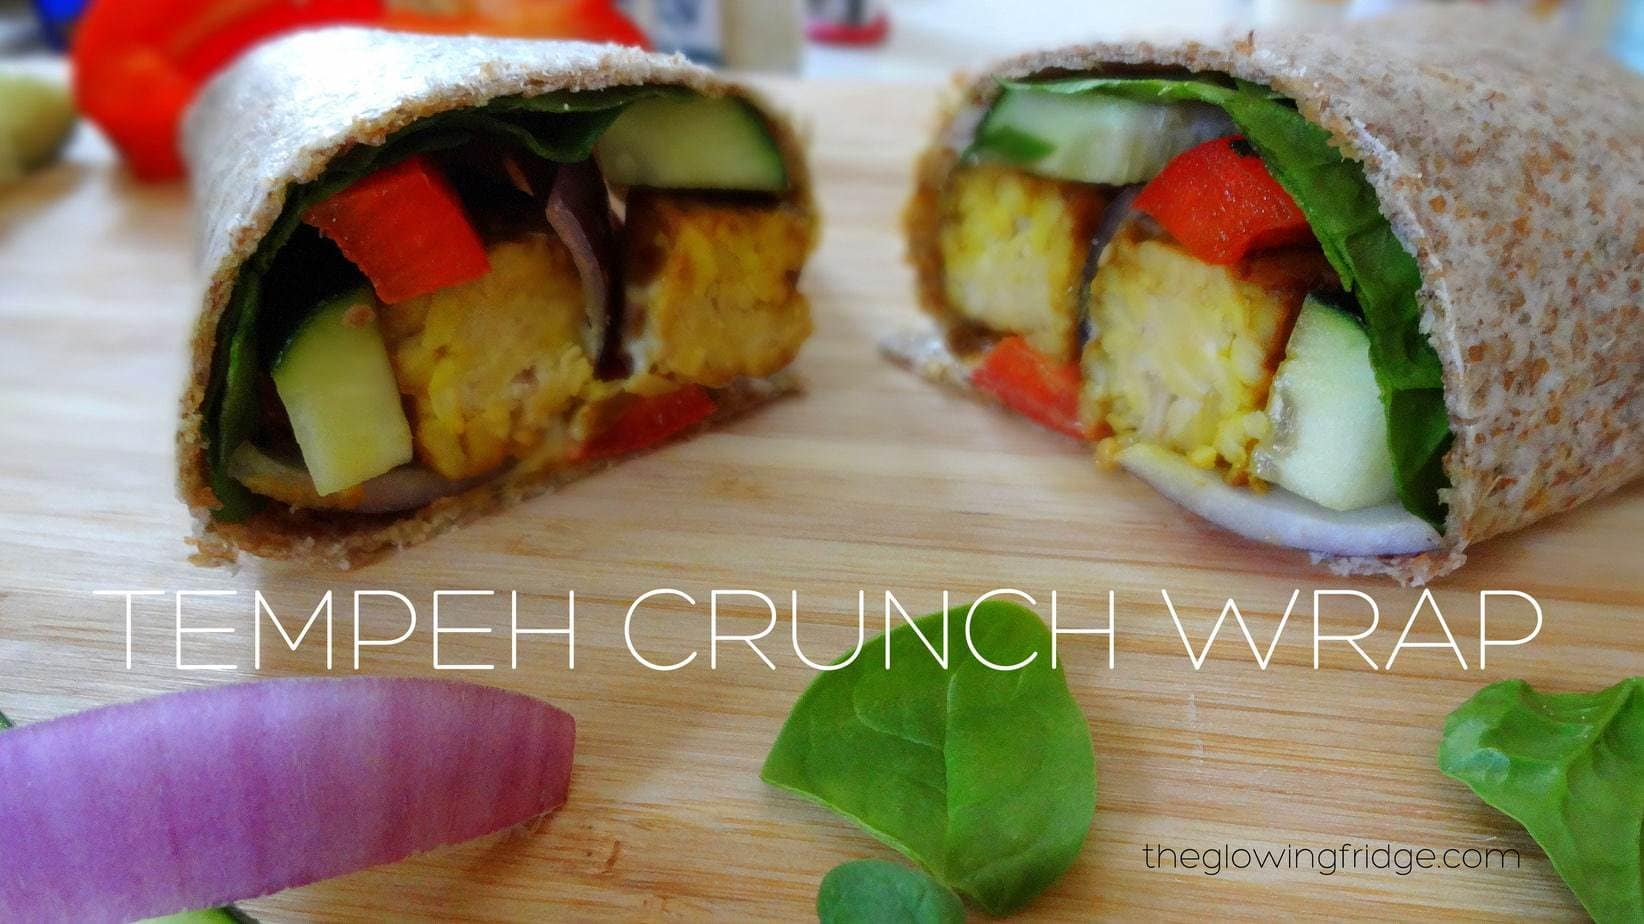 Tempeh Crunch Wrap